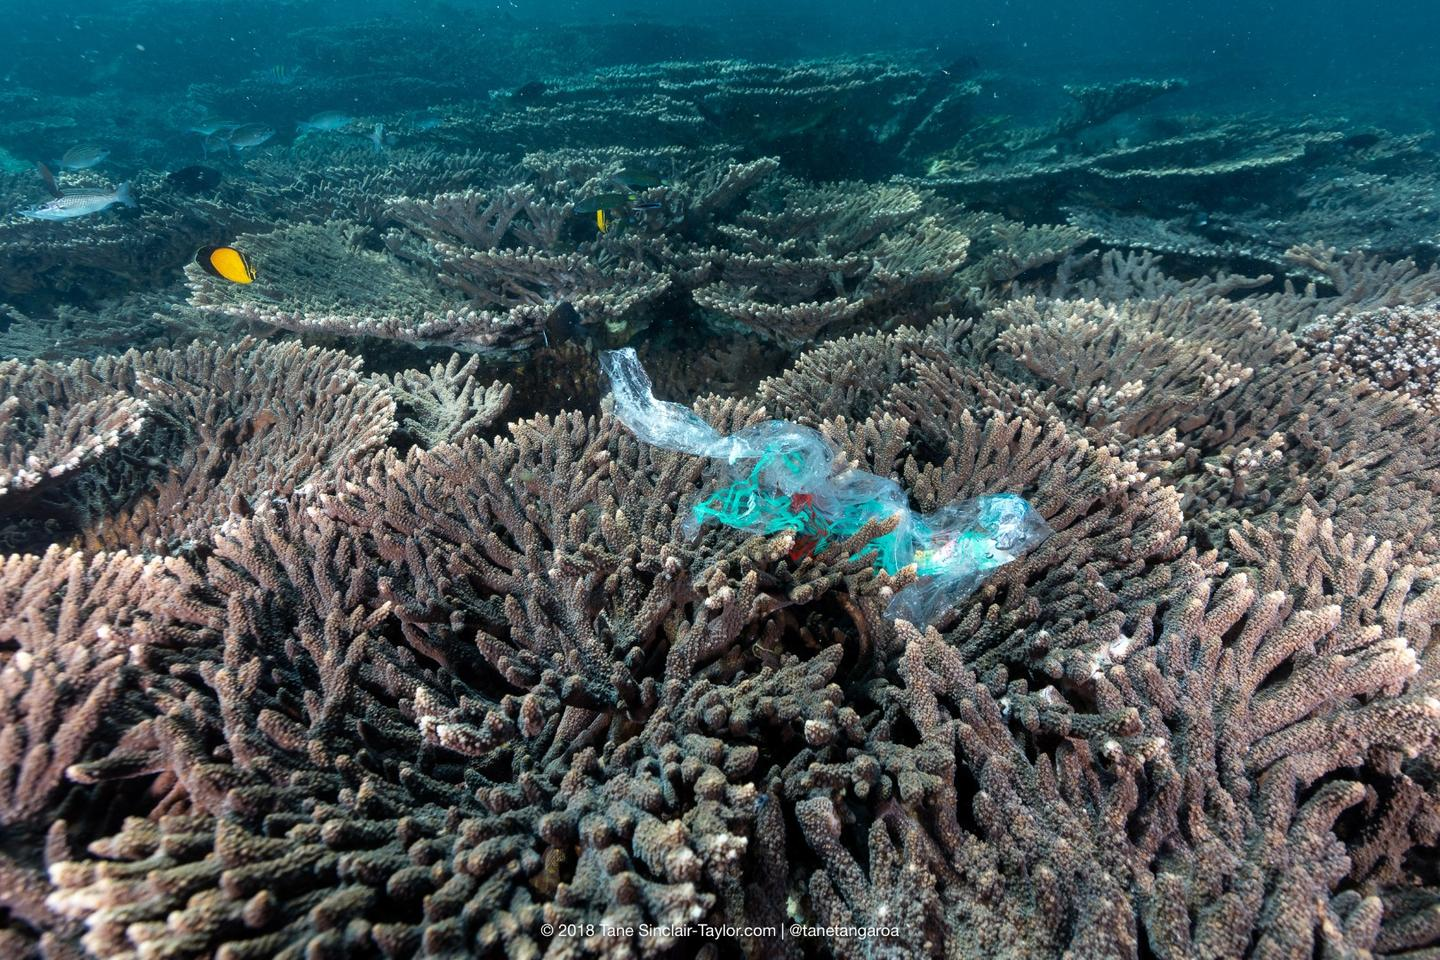 Potentially bacteria-spreading plastic waste on a coral reef